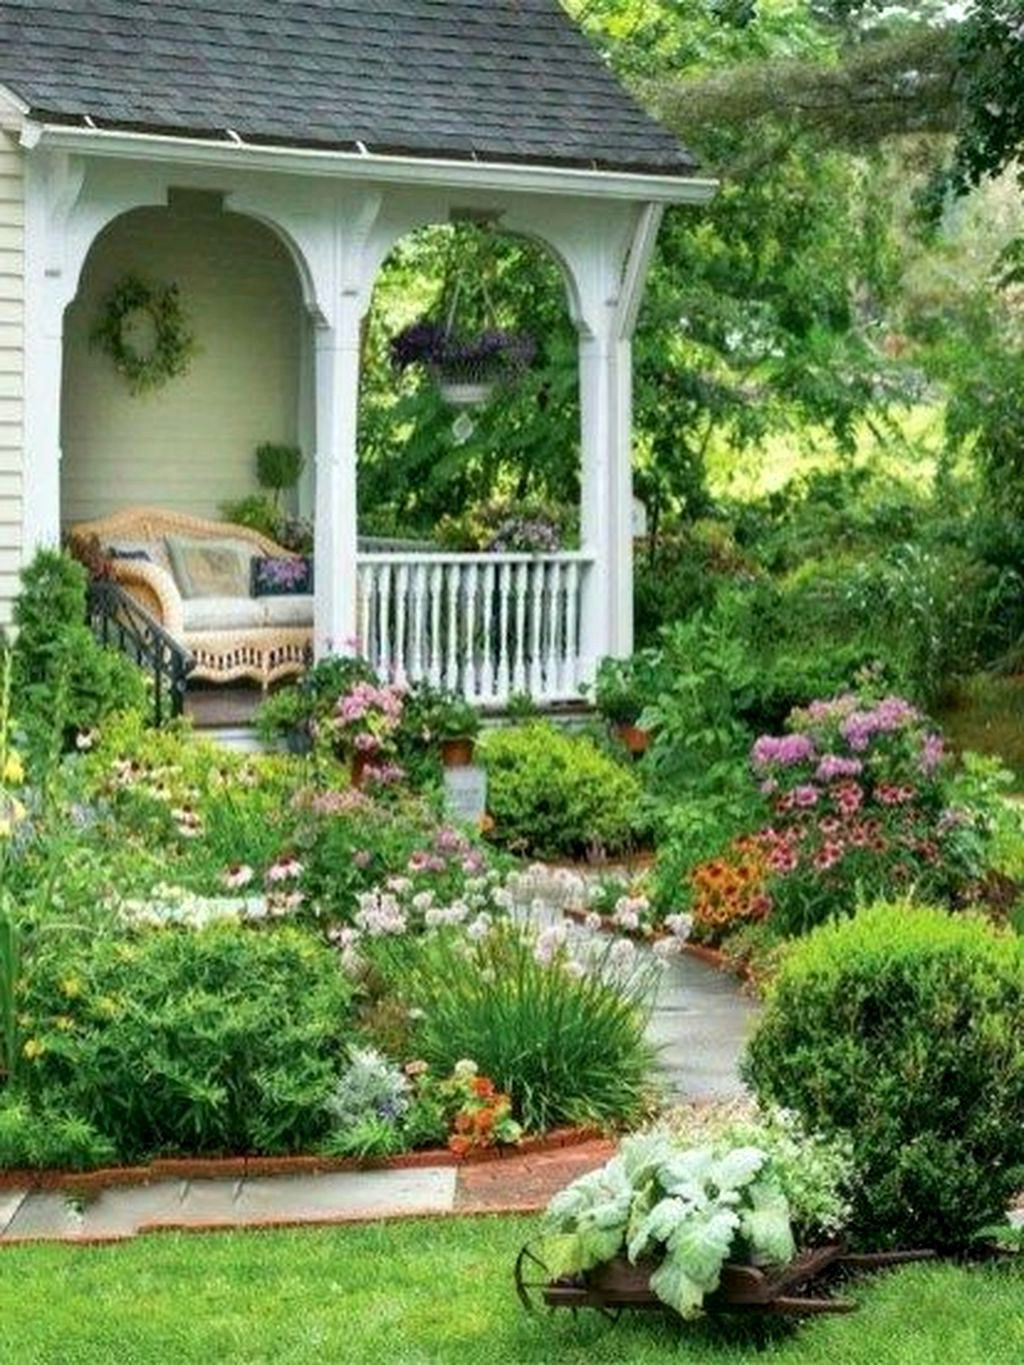 35 Amazing Front Yard Landscaping With Farmhouse Style 31 Best Home Design Ideas In 2021 Farmhouse Landscaping Pathway Landscaping Front Yard Landscaping Design Small farmhouse backyard ideas